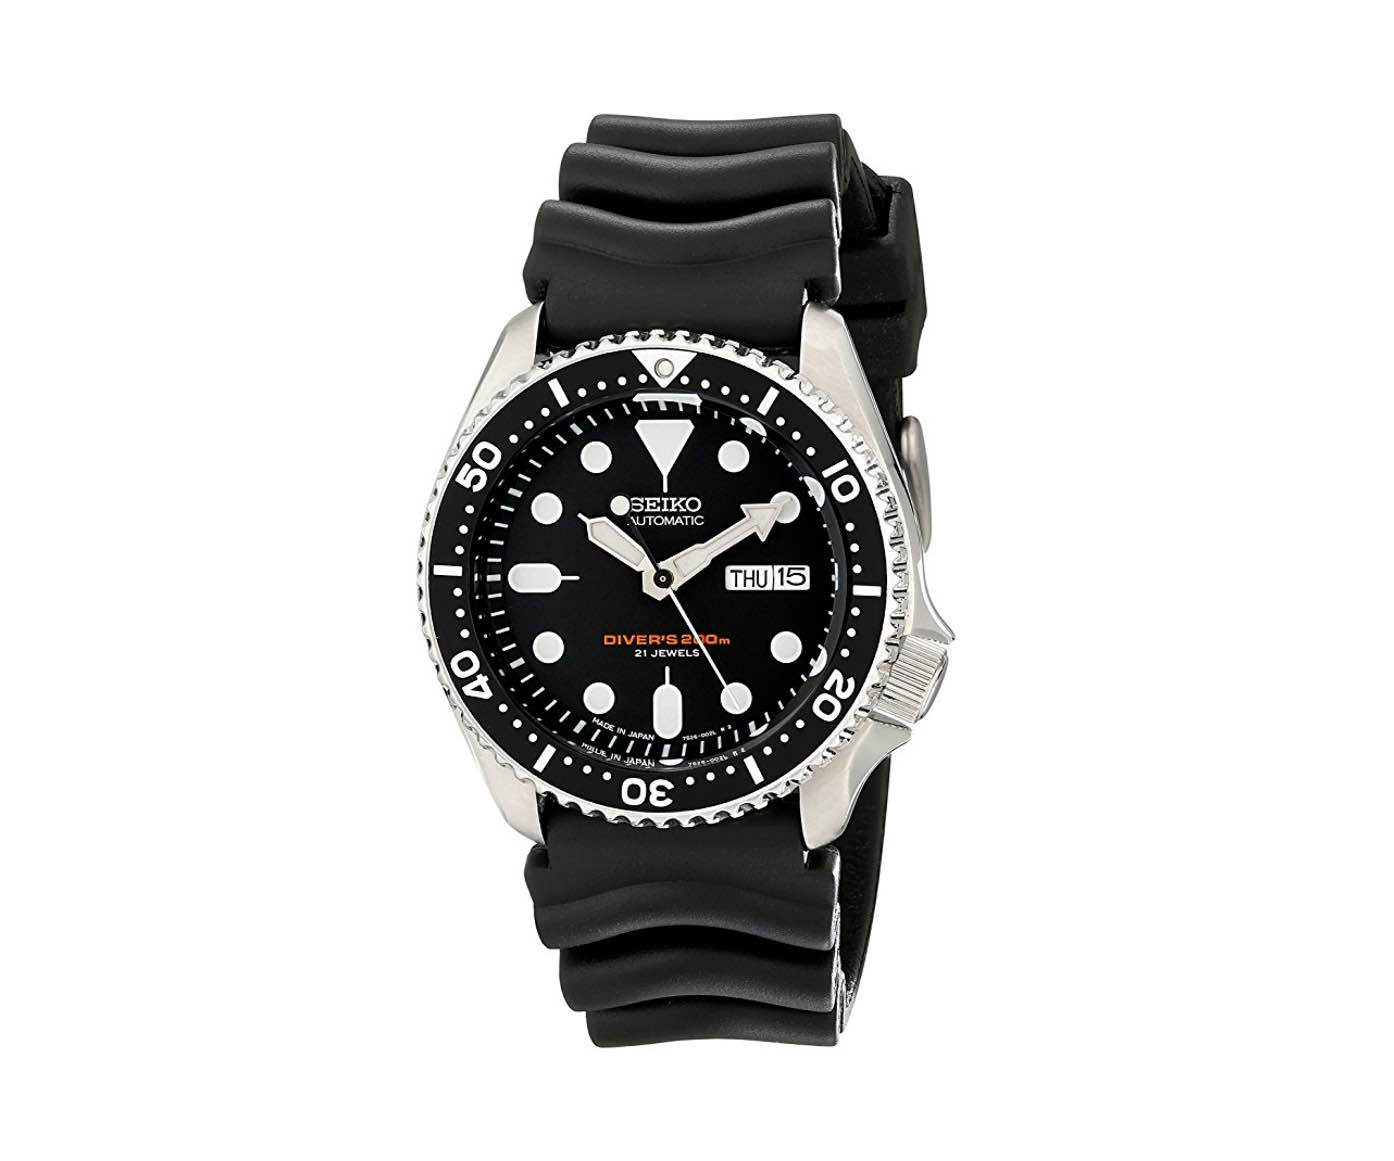 Seiko SKX Dive watch